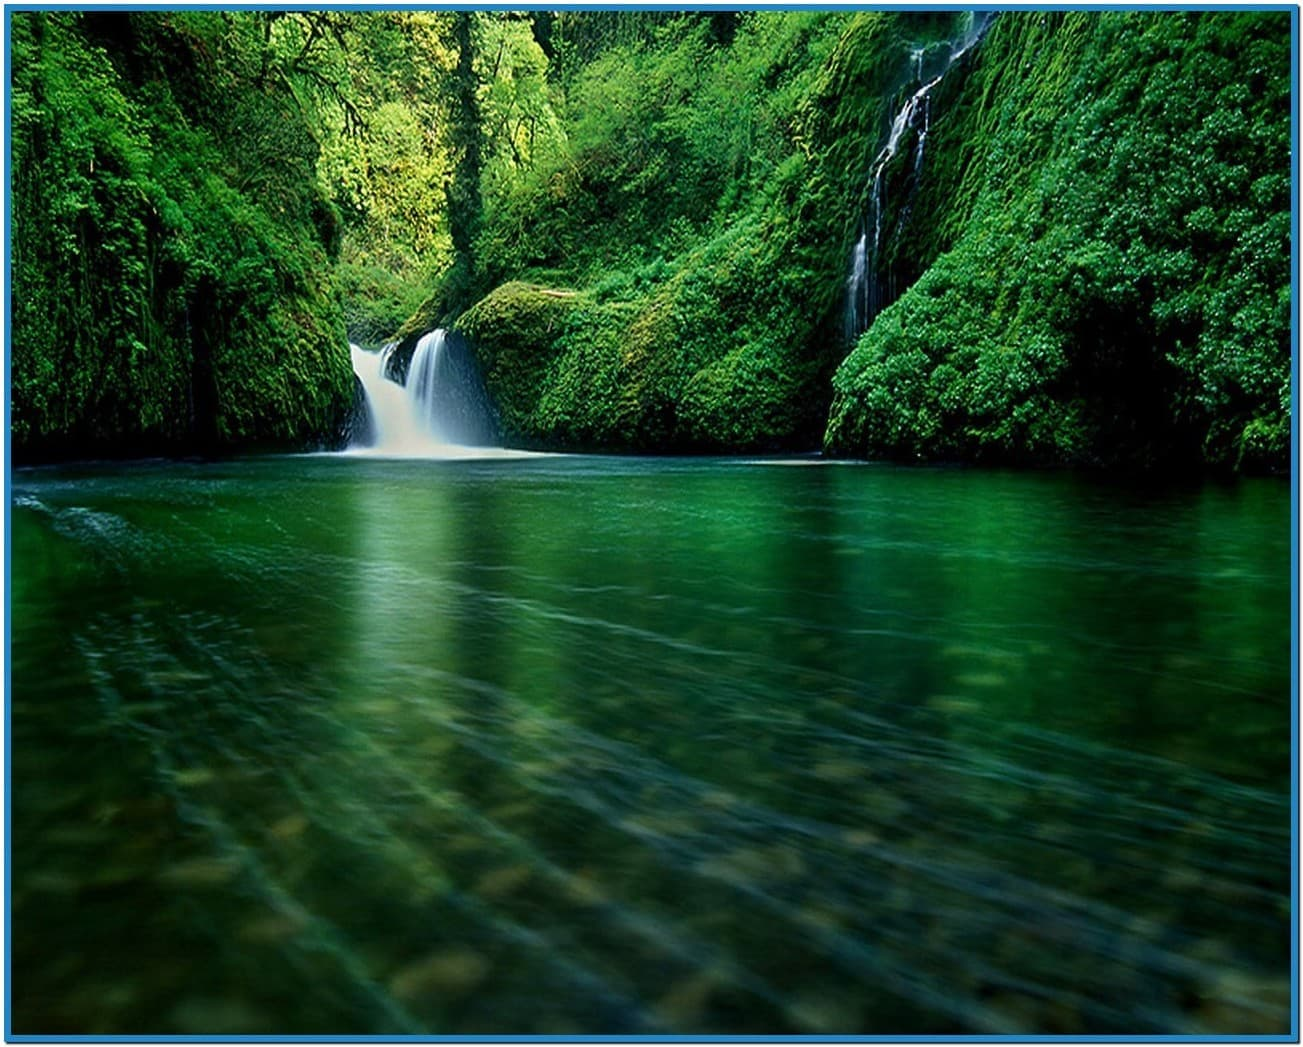 Waterfall screensaver pc   Download 1303x1047